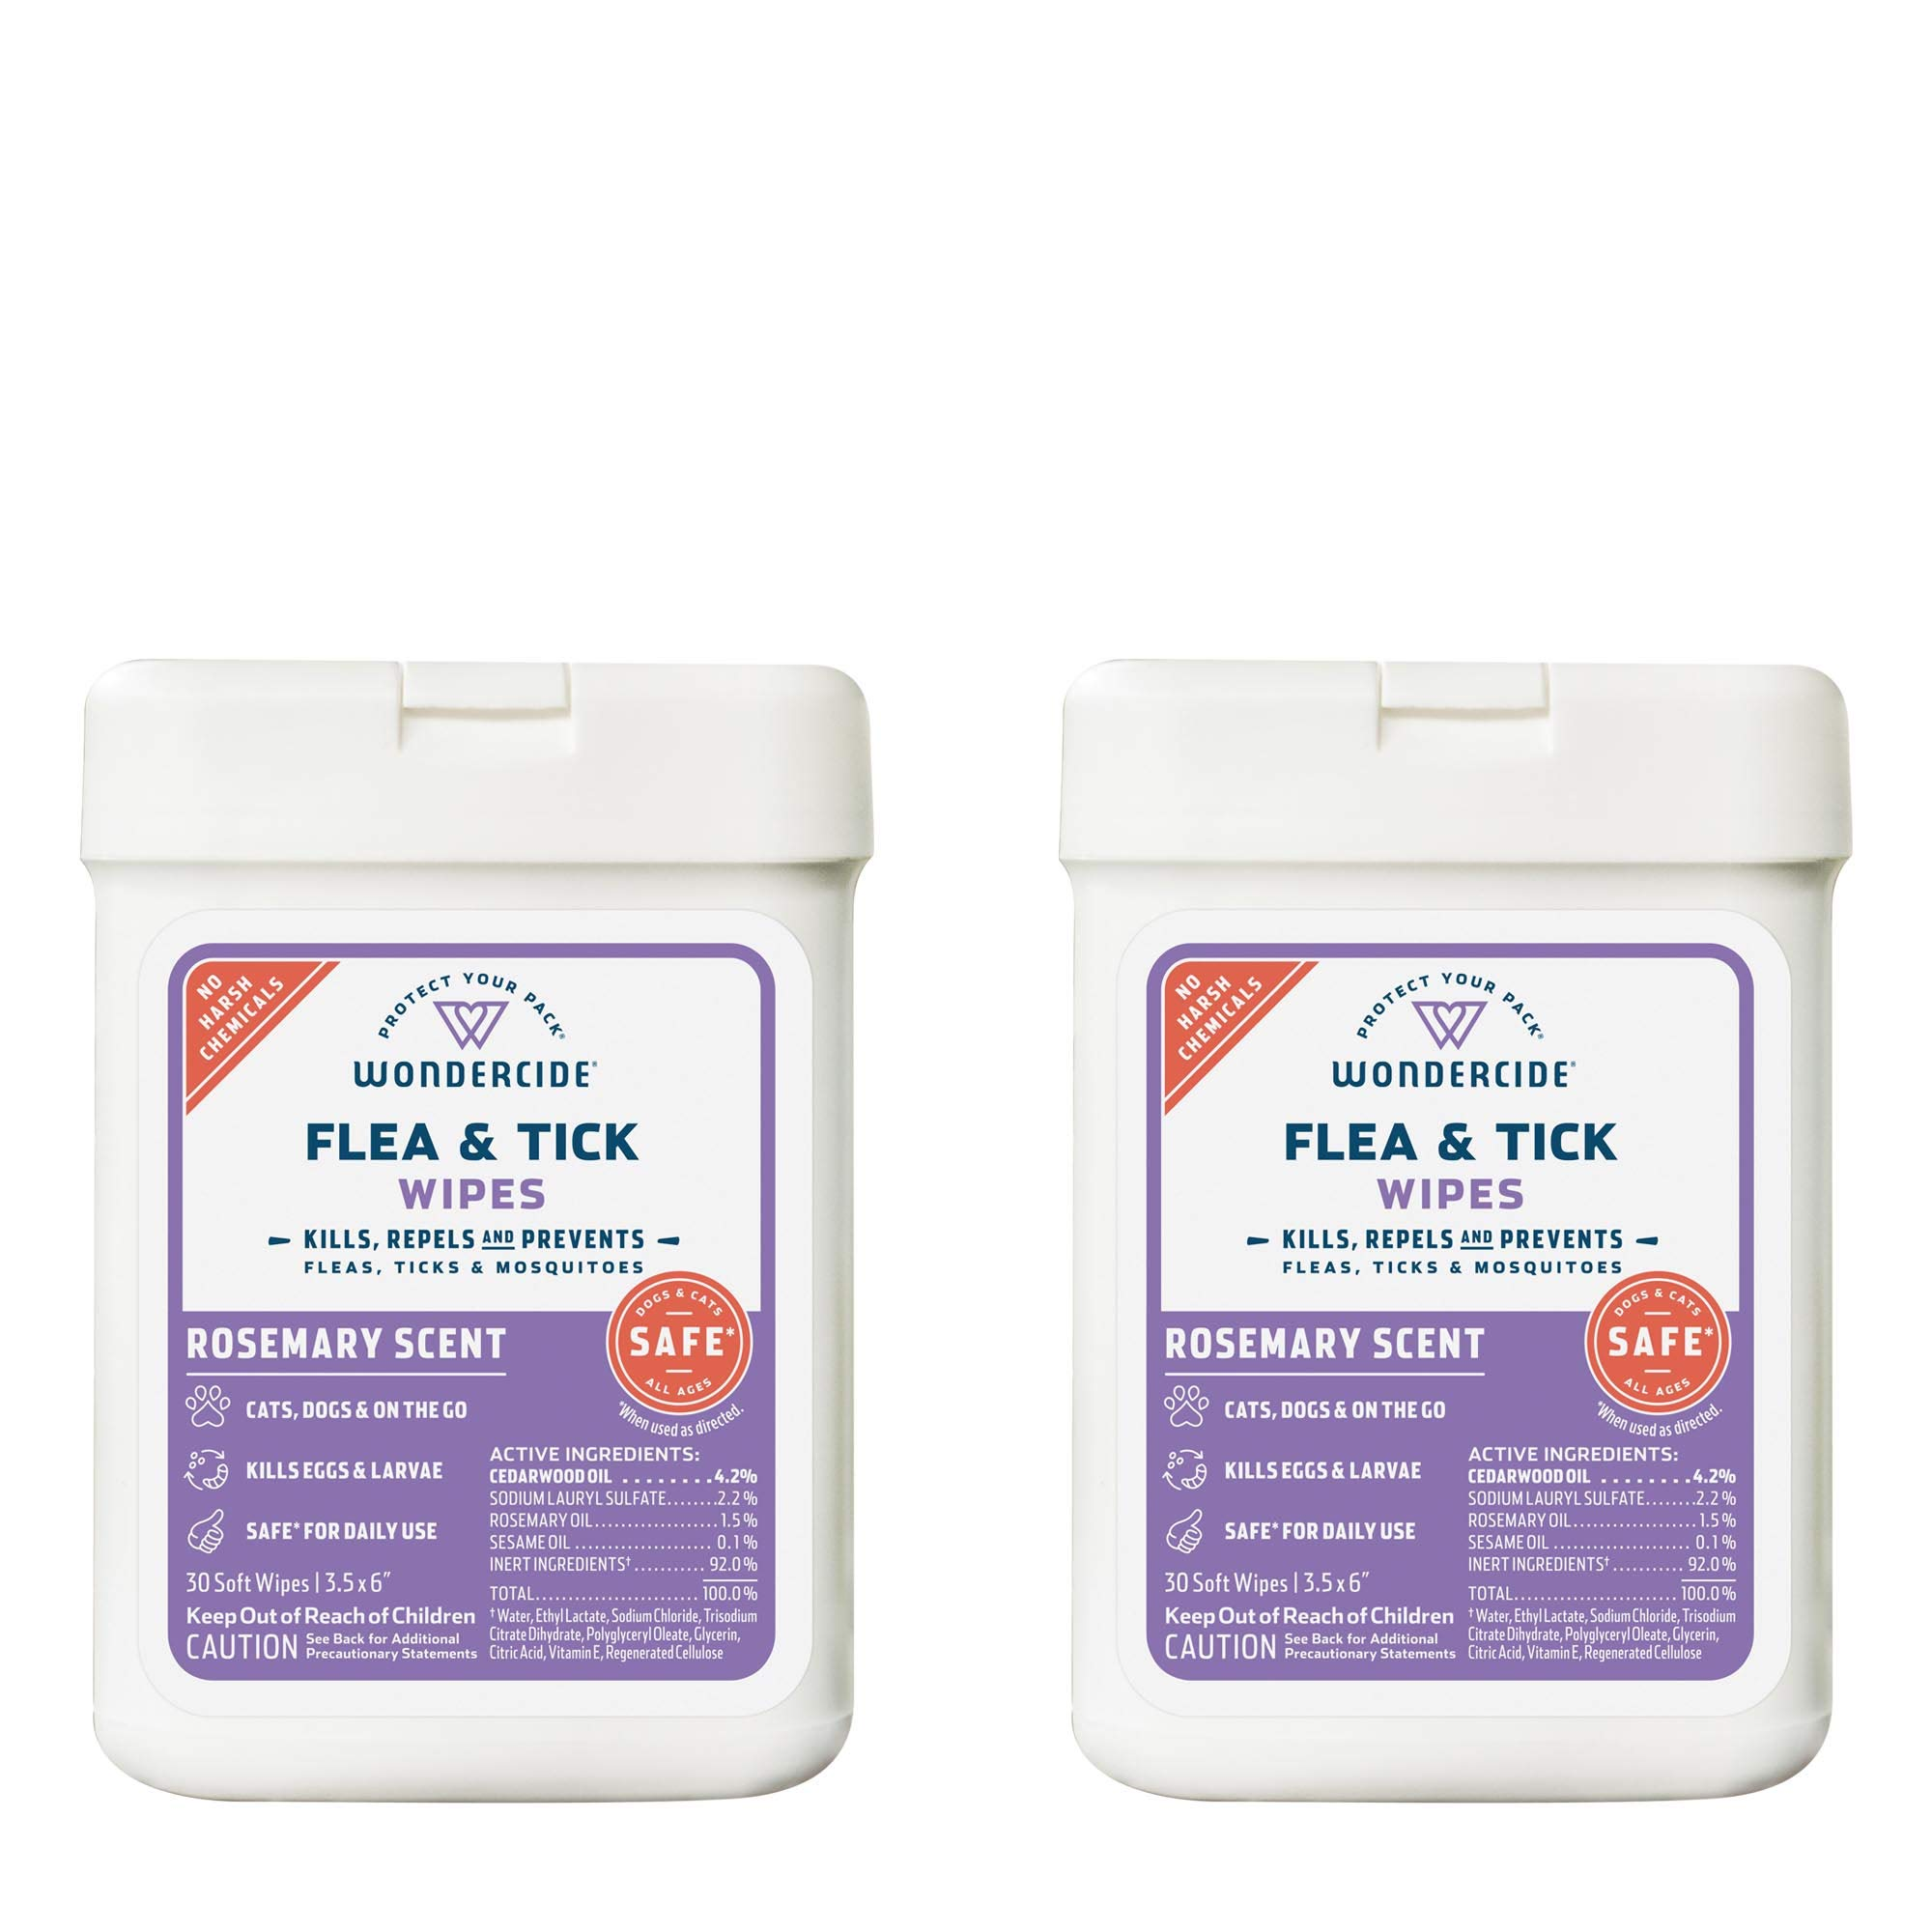 Wondercide Natural Flea, Tick and Mosquito Wipes for Dogs and Cats – Flea and Tick Killer, Treatment, Prevention – 2-Pack Rosemary